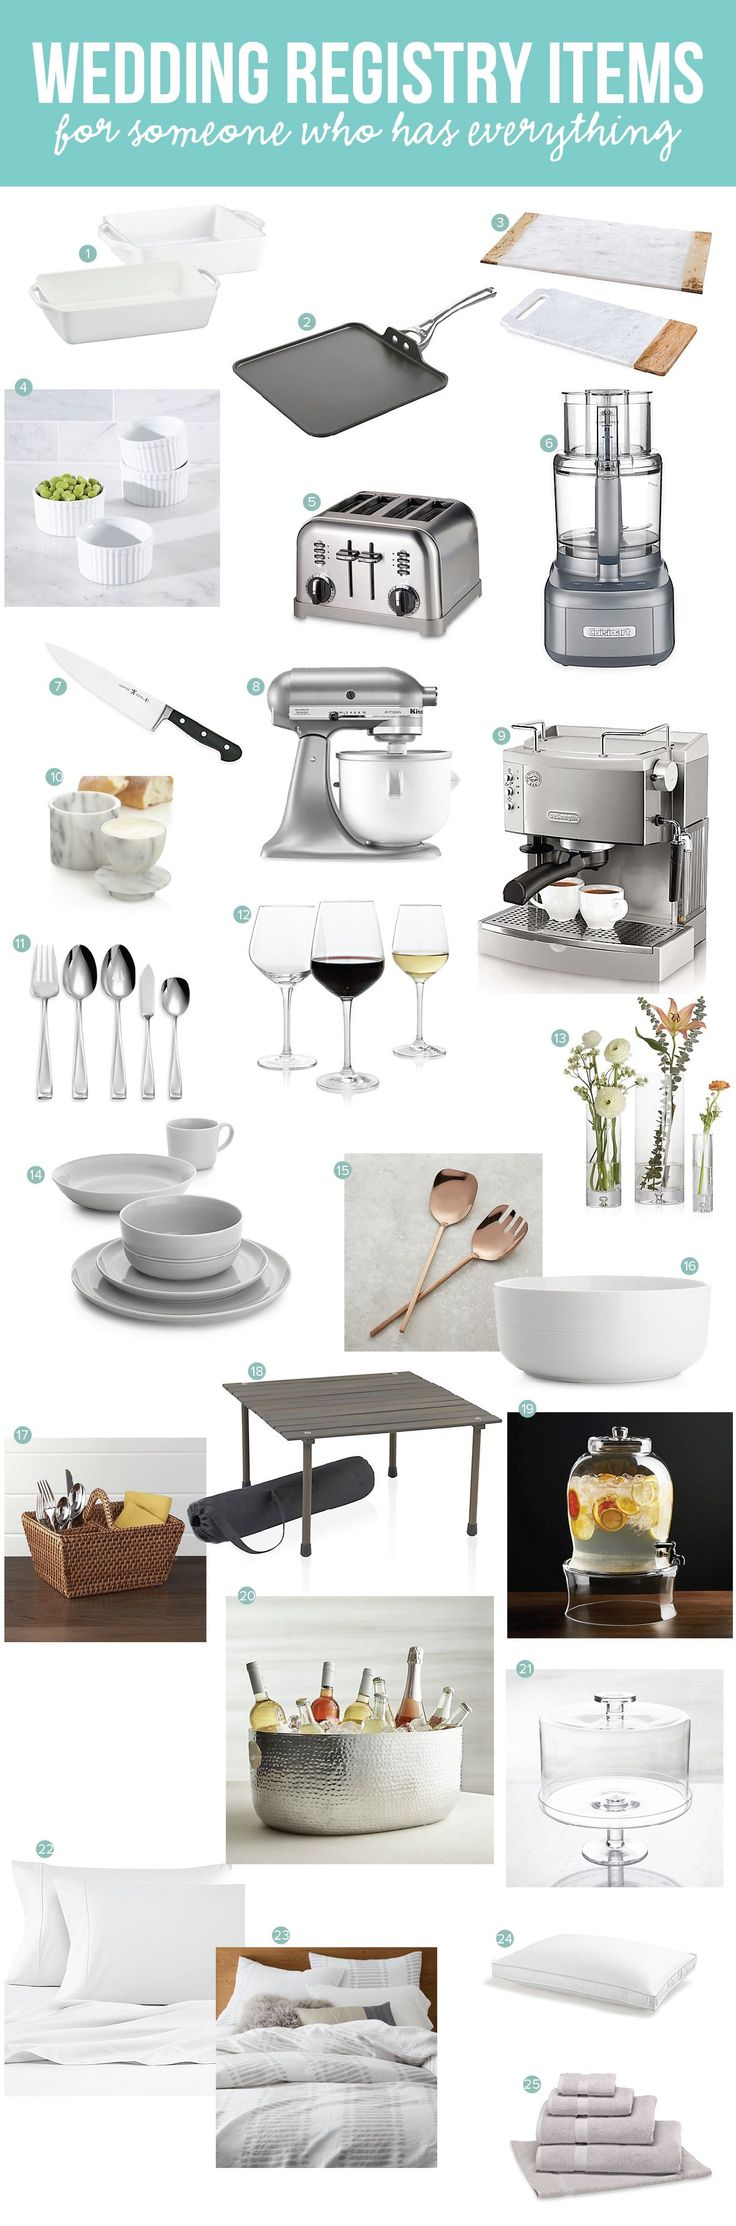 wedding registry items who have everything. Best items to register for for your wedding. Don't know what to register for and think you have everything? Check this list to see what items you should replace or add.